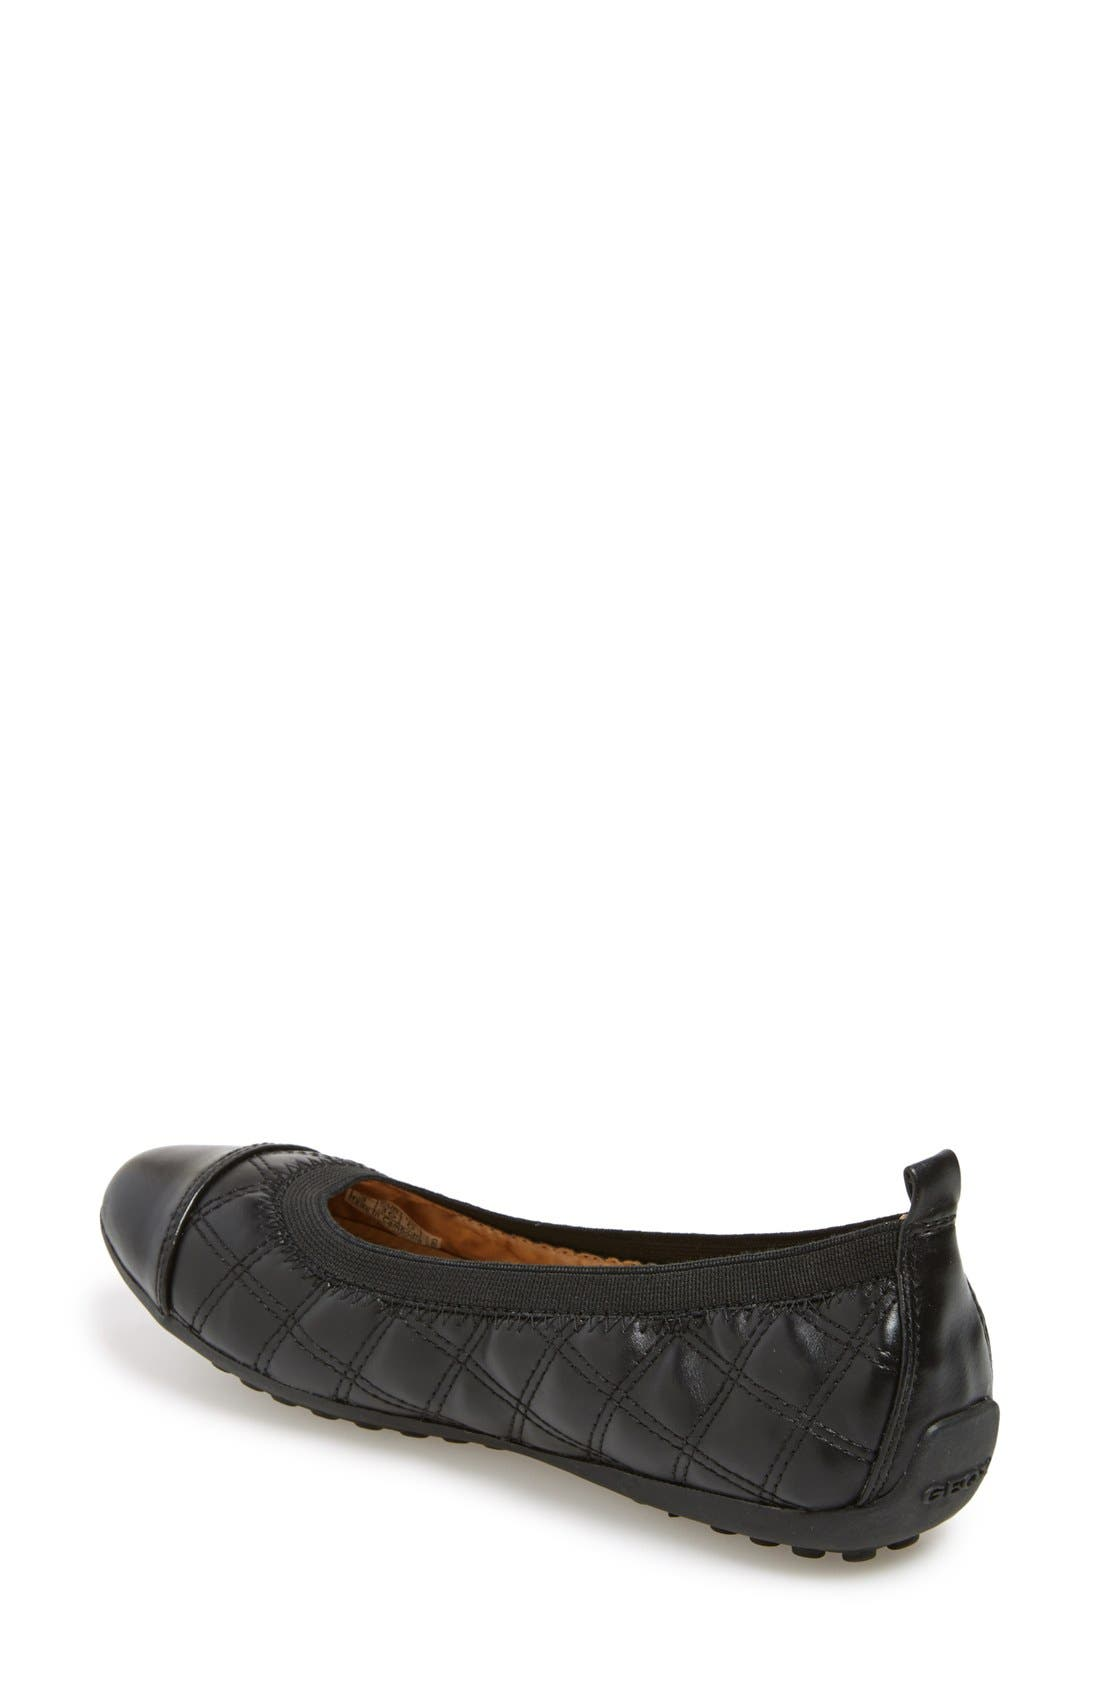 'Piuma' Ballerina Flat,                             Alternate thumbnail 2, color,                             Black Synthetic Leather